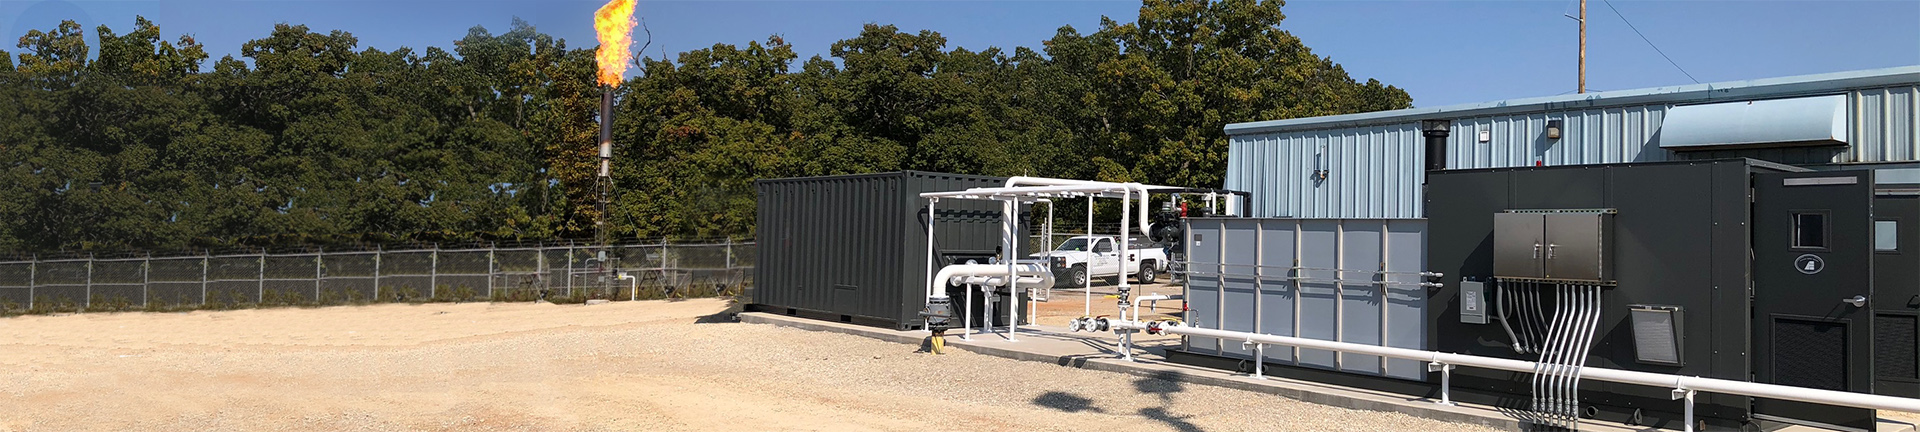 Propane-Air - SNG Standby Systems - Critical Fuel Backup Systems